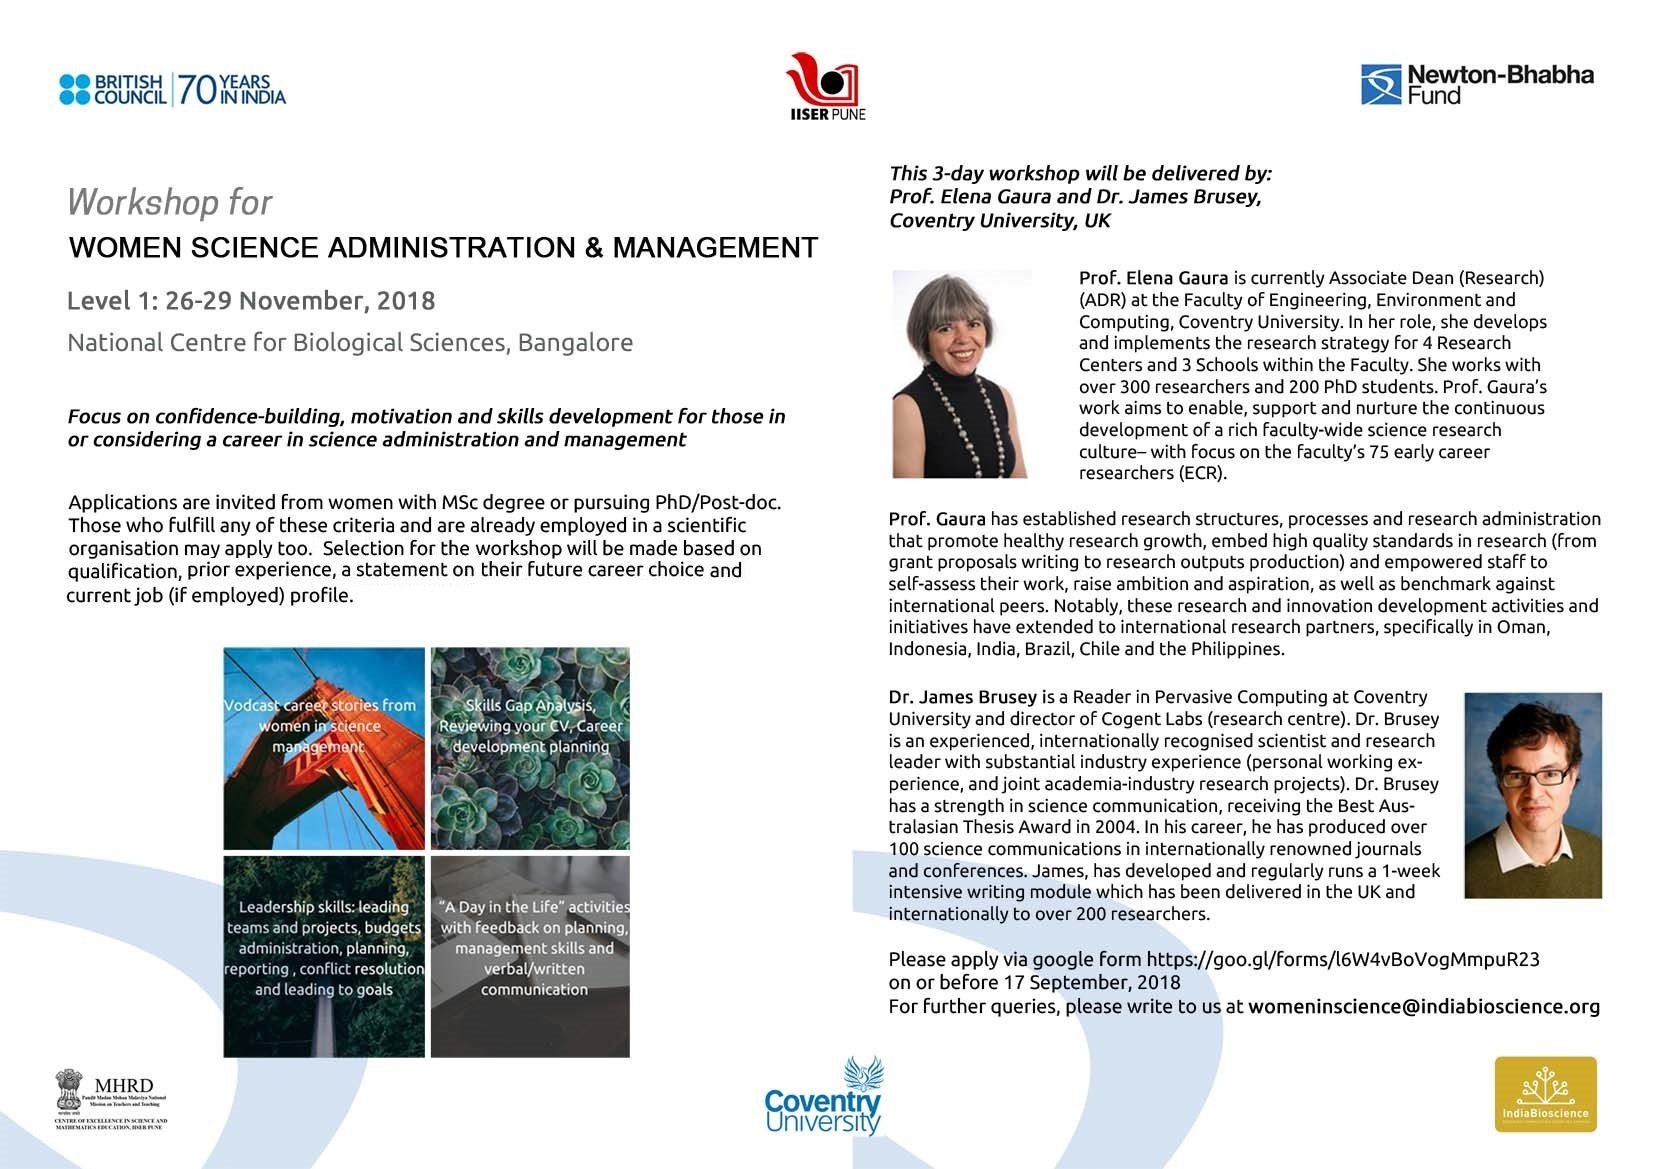 difference between scientific management and administrative management